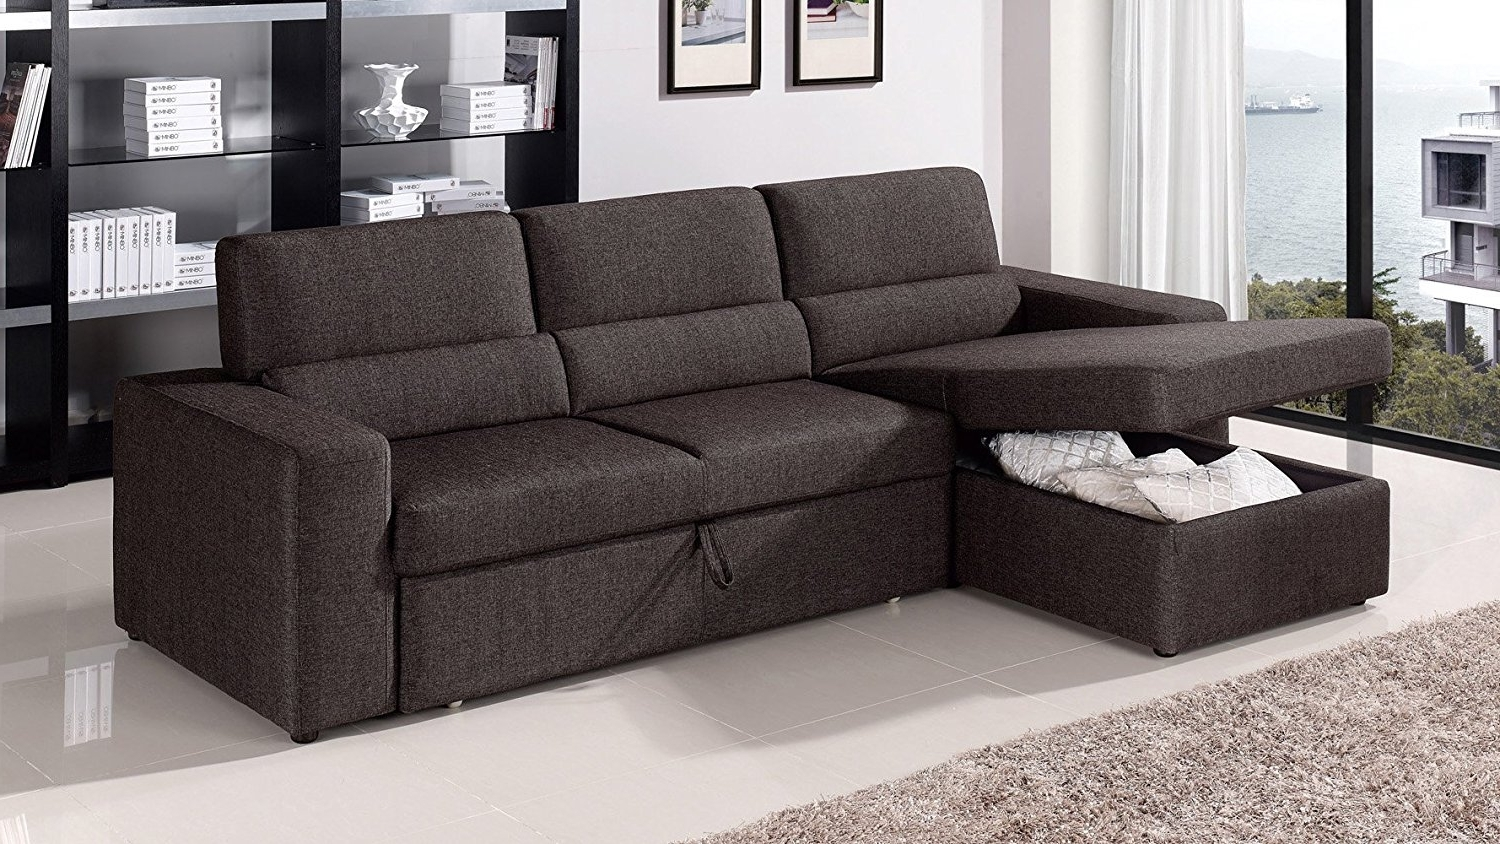 Fashionable Sleeper Sofas With Chaise Within Amazon: Black/brown Clubber Sleeper Sectional Sofa – Left (View 3 of 15)